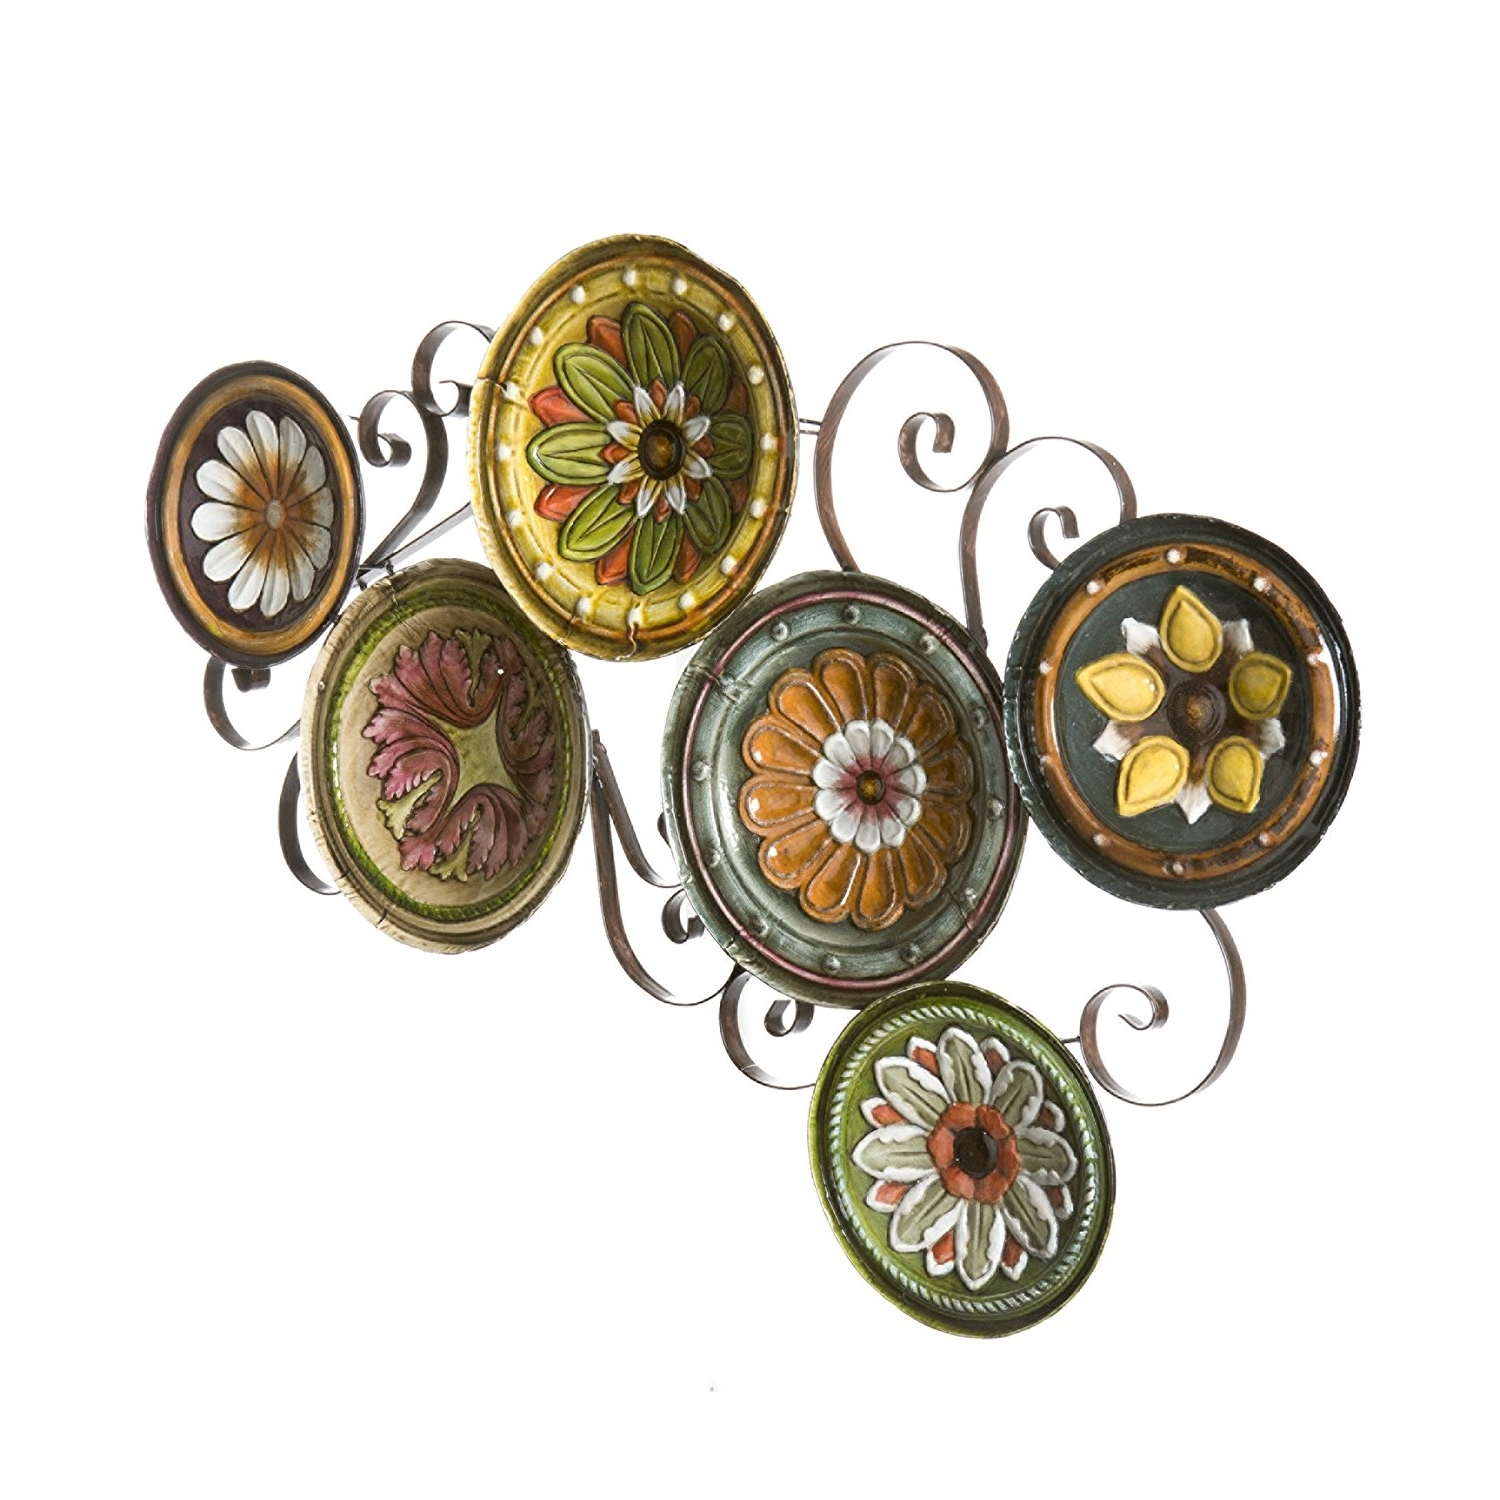 Most Recently Released Amazon: Sei Scattered Italian Plates Wall Art: Wall Sculptures Pertaining To Midnight Italian Plates Wall Art (View 9 of 15)